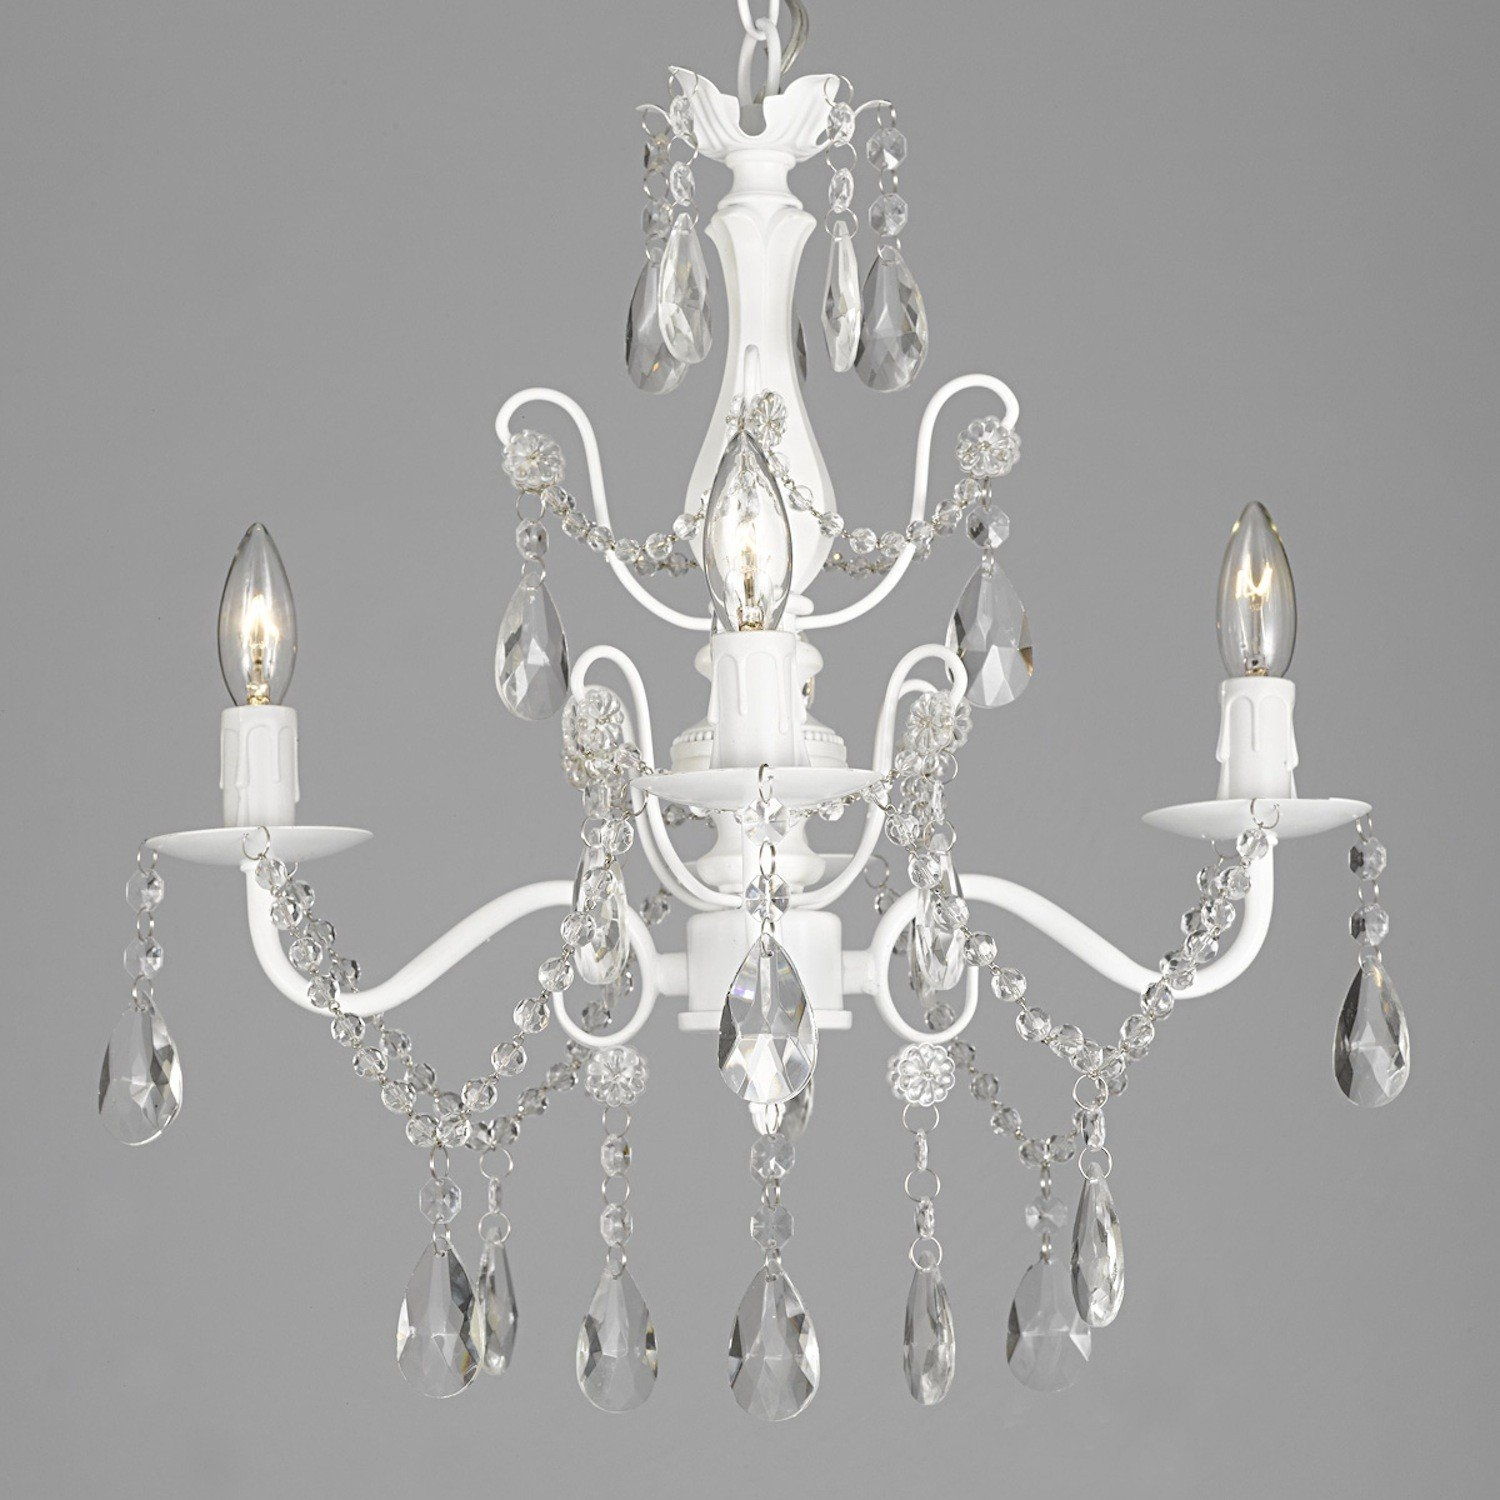 White Chandeliers Youll Love Wayfair Throughout White Chandeliers (View 4 of 15)